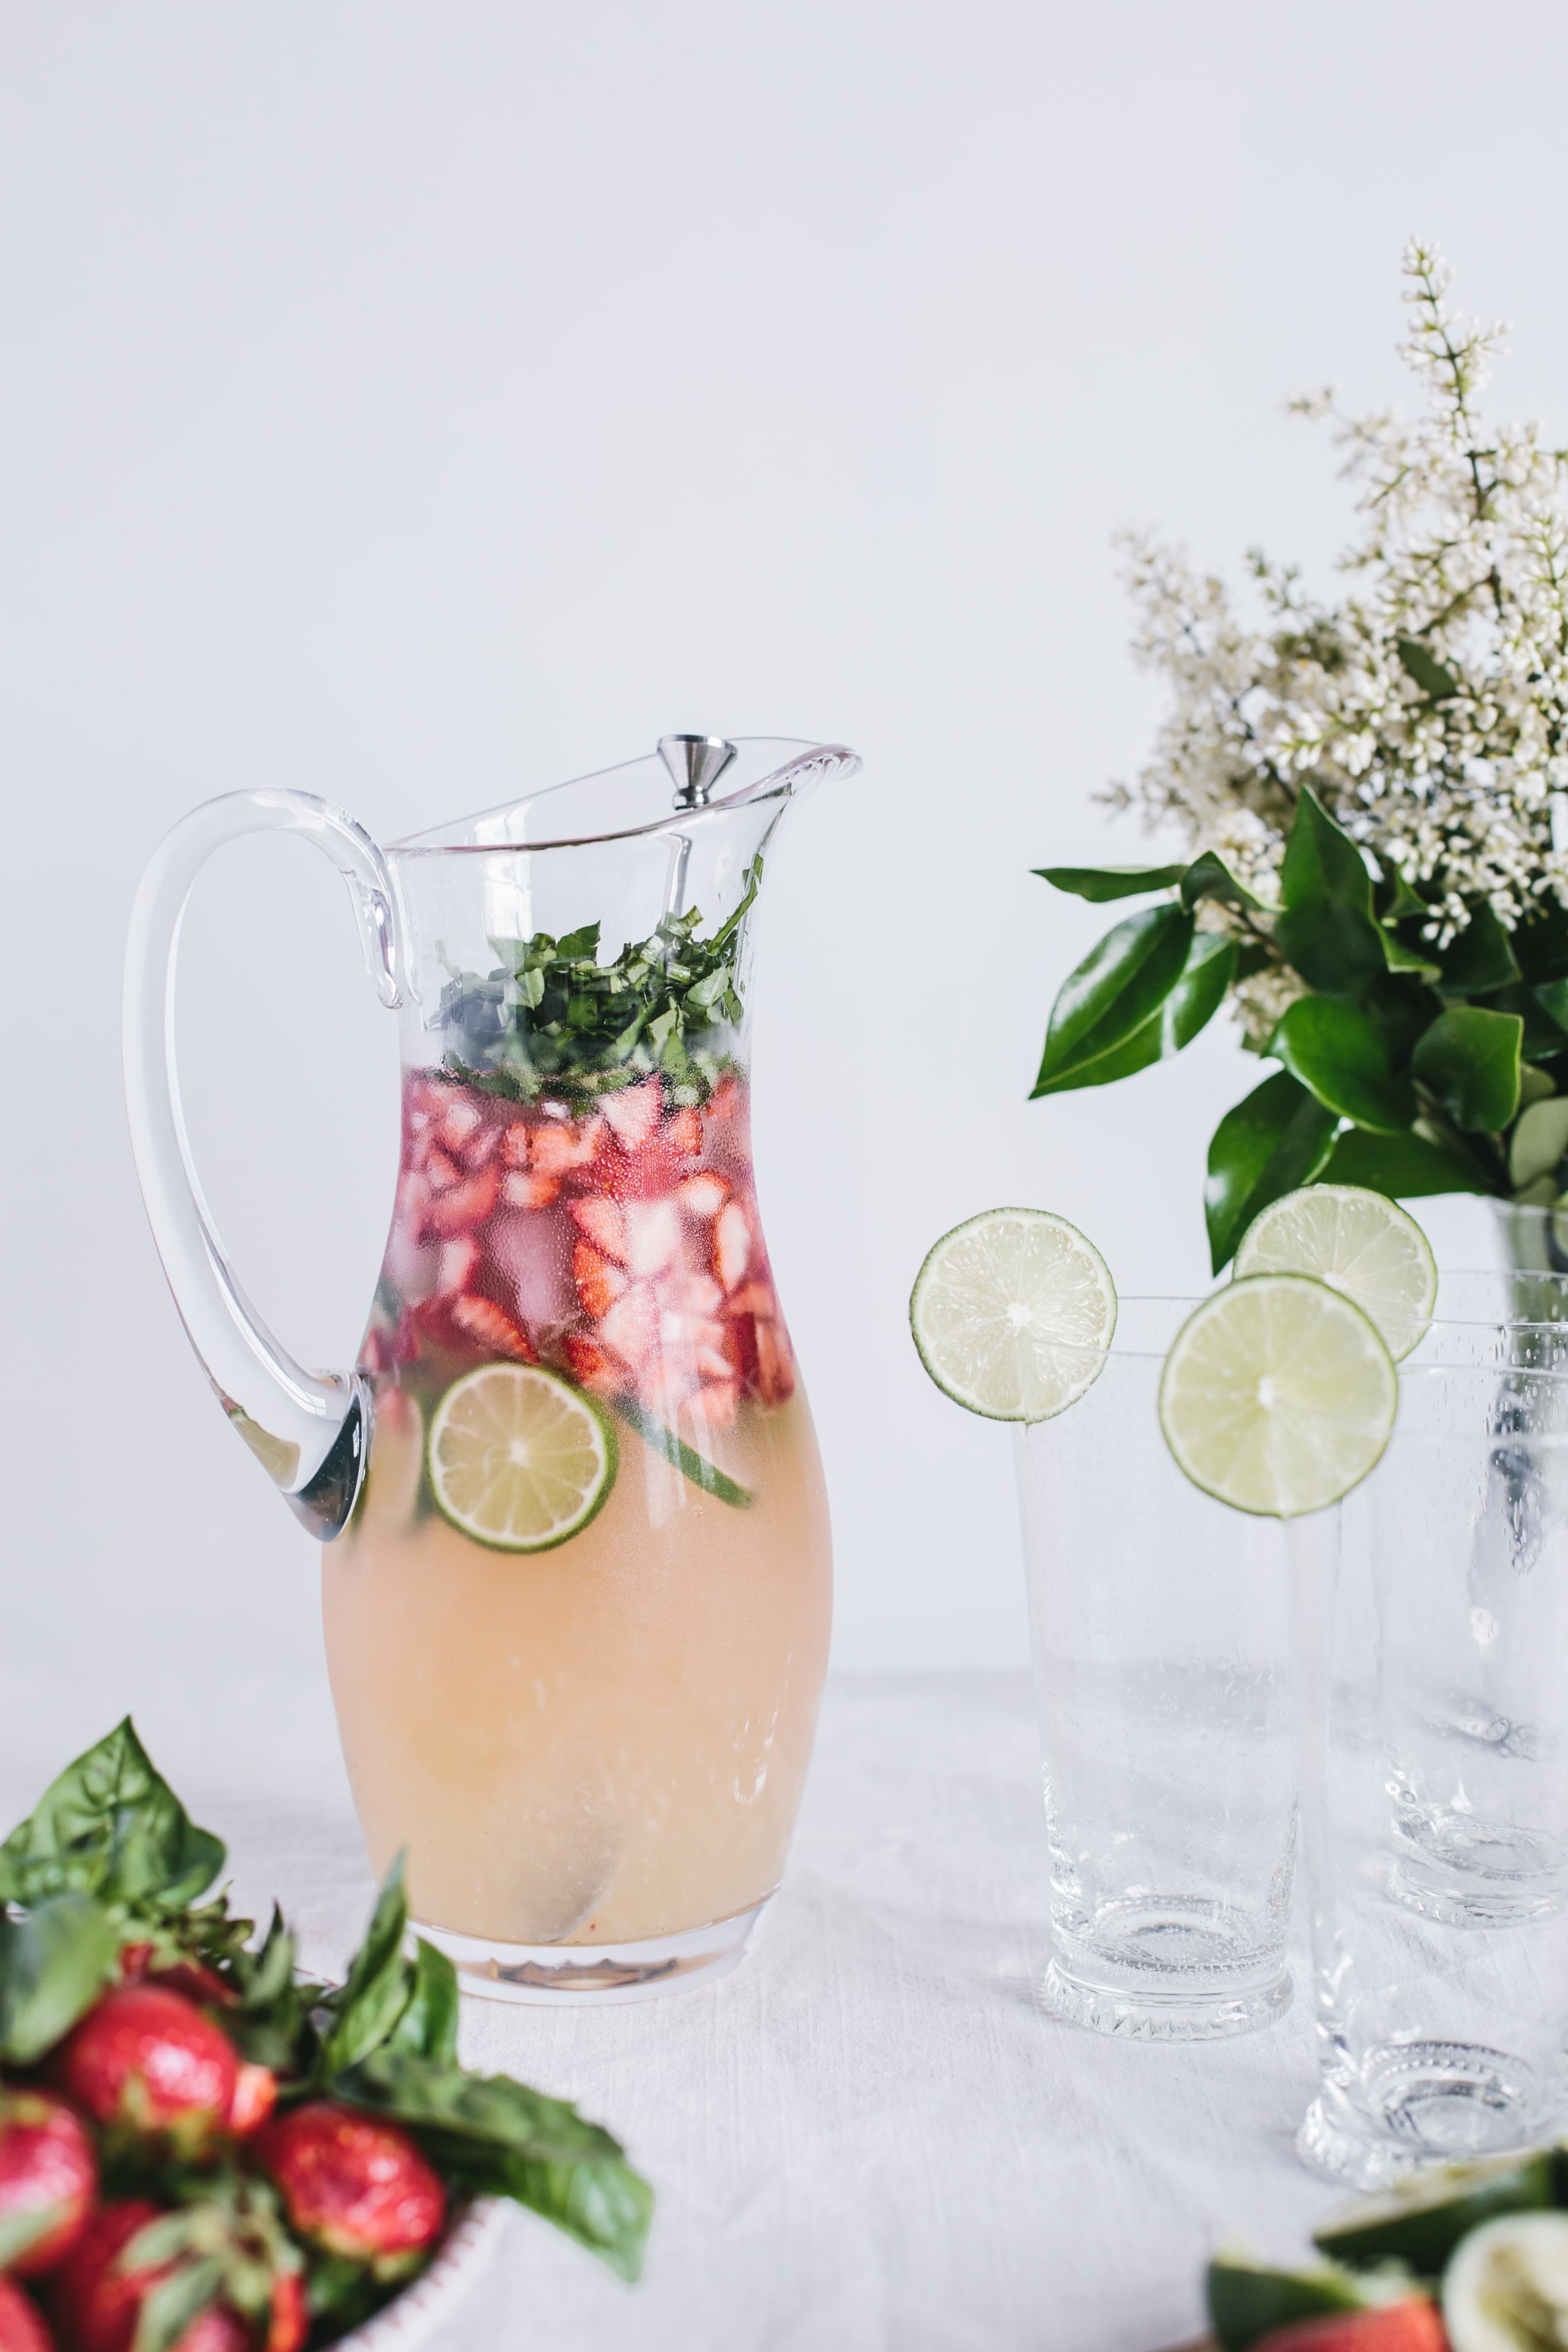 Honey Sweetened Limeade with Strawberries and Basil